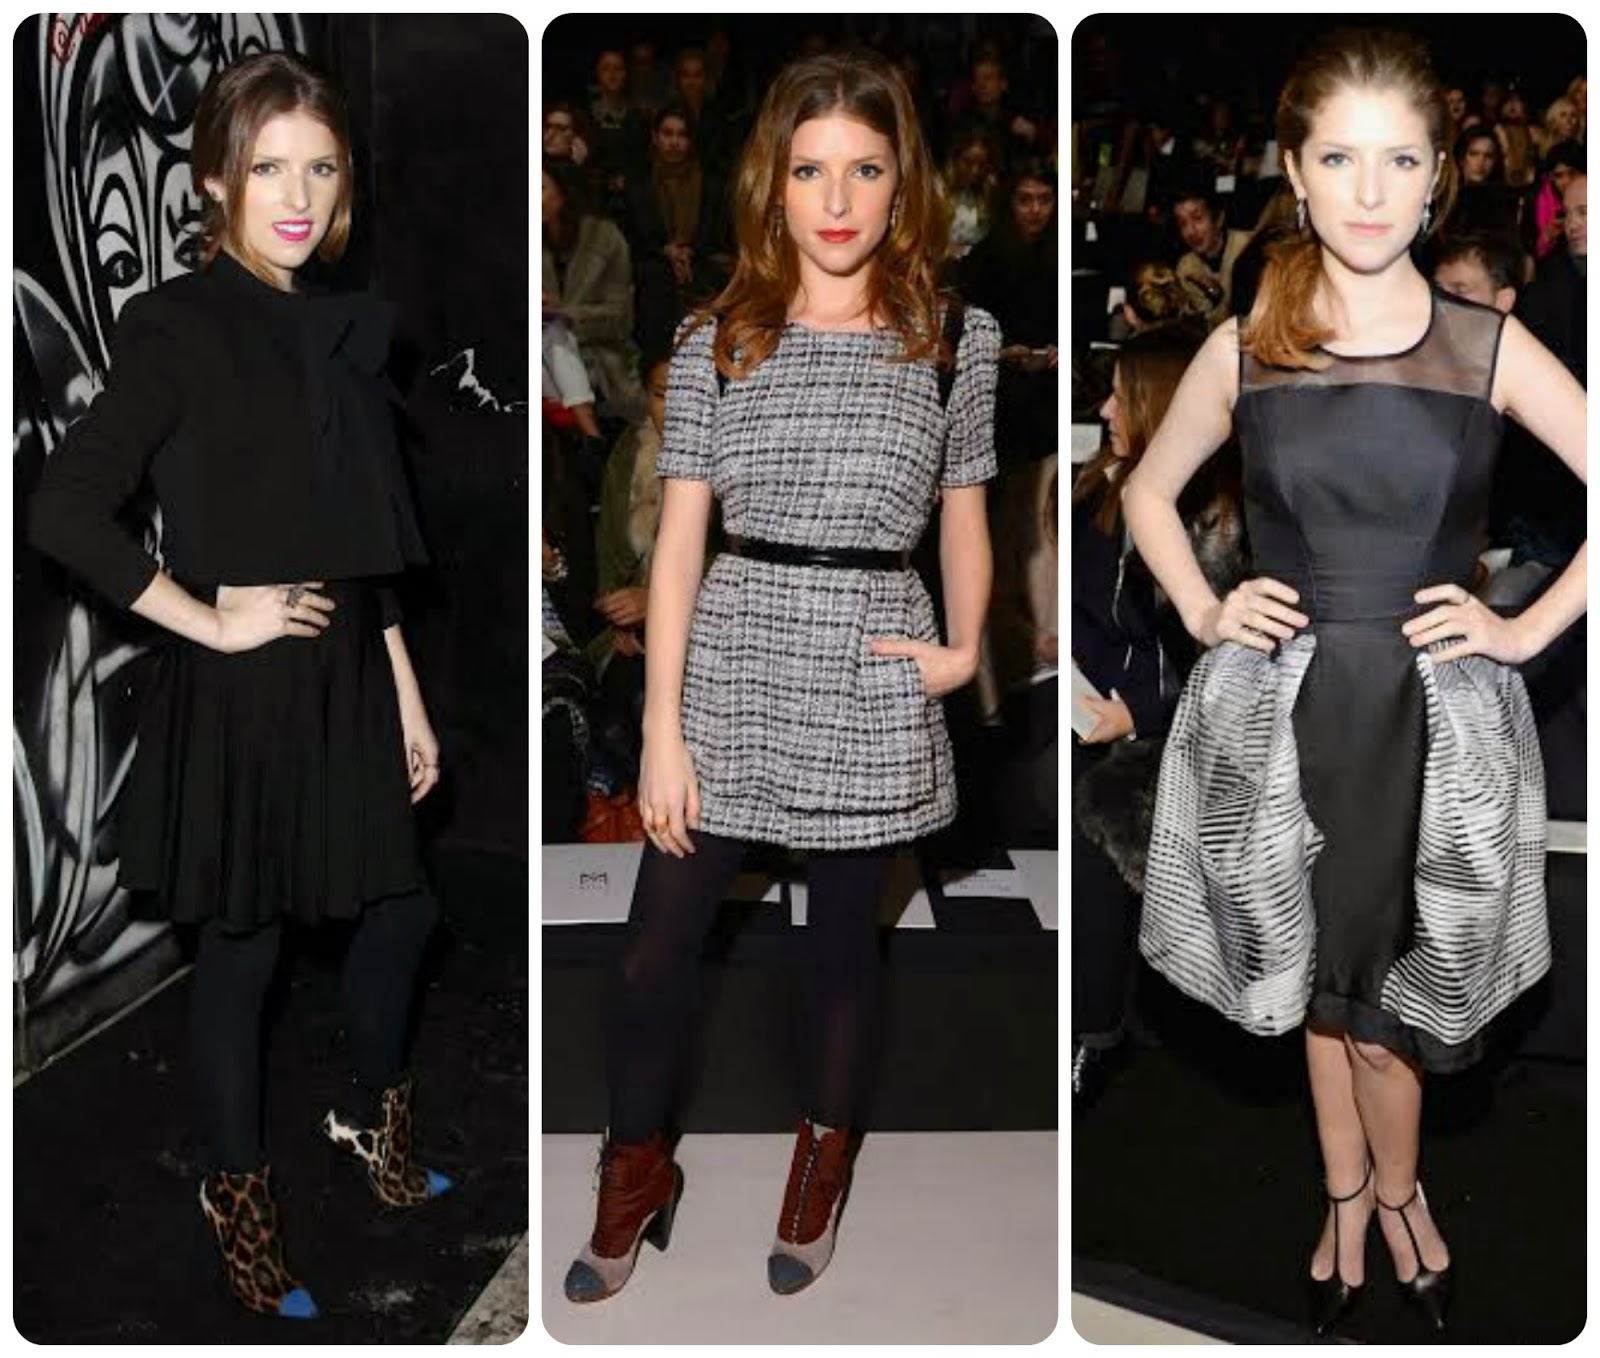 Anna Kendrick - Mercedes-Benz Fashion Week Fall 2014 Carolina Herrera, Milly by Michelle Smith and Alicie+Olivia